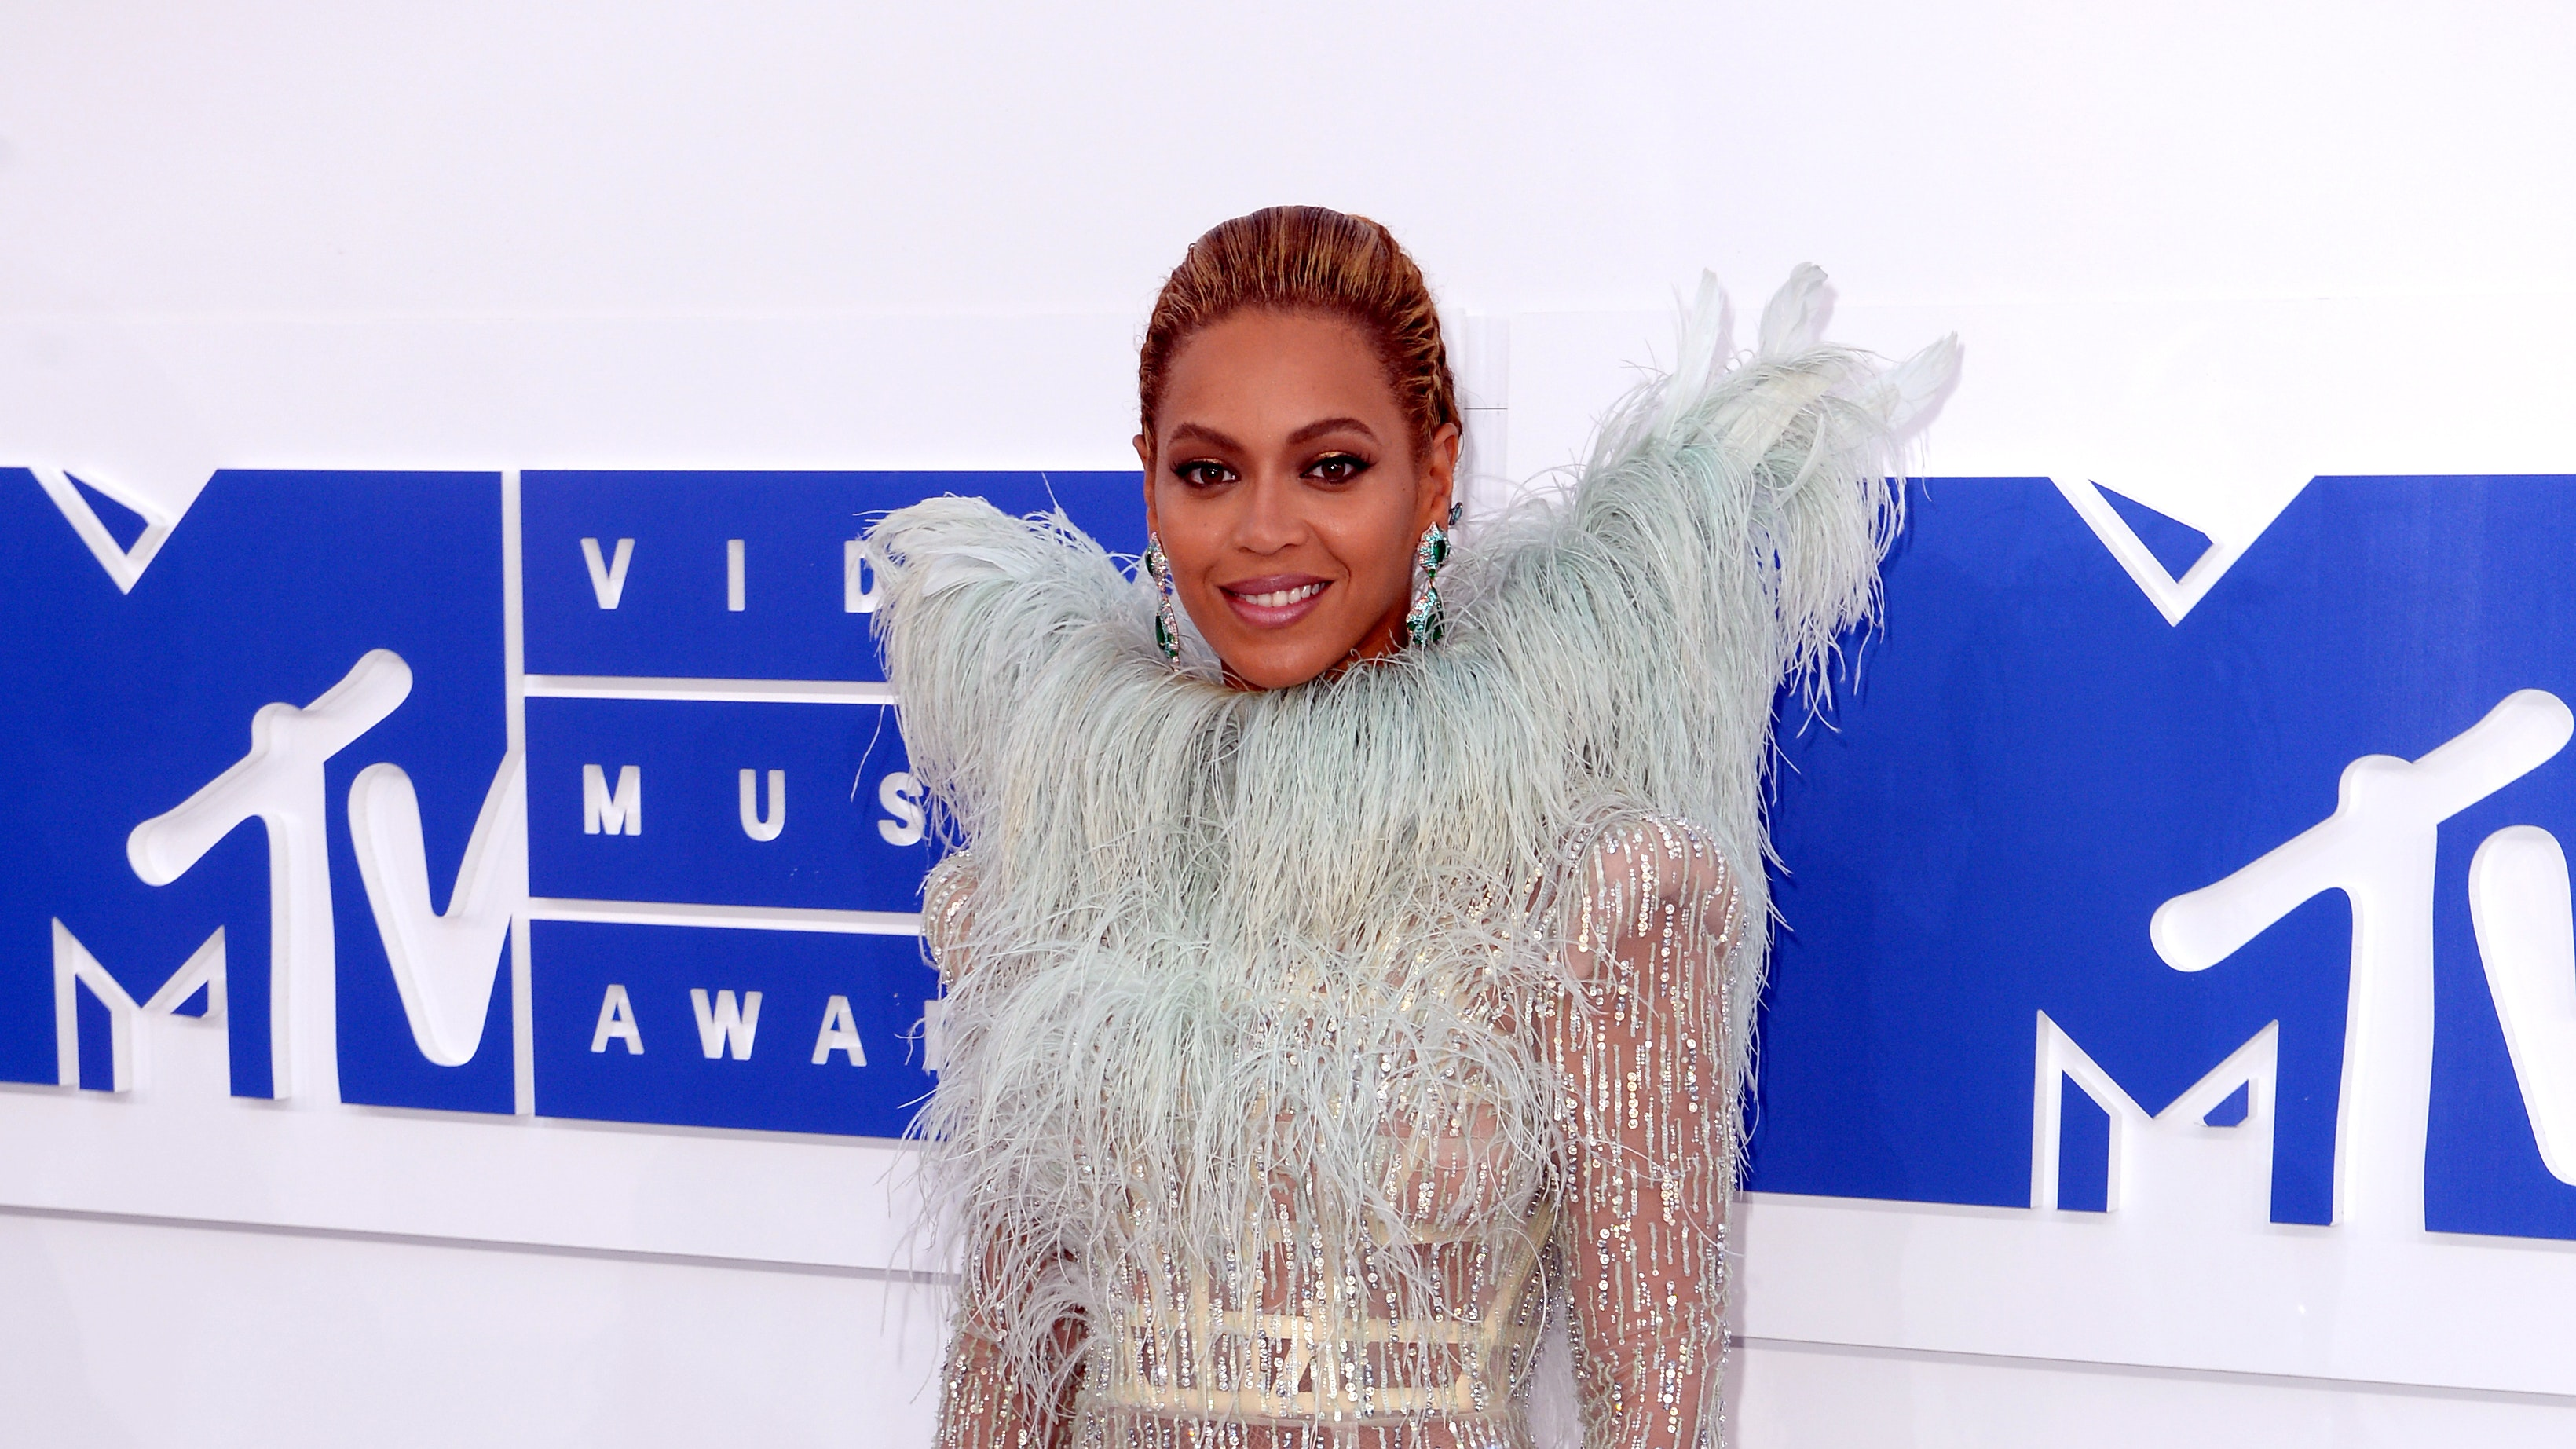 Mathew Knowles says Beyoncé and Solange's light complexions helped their music careers